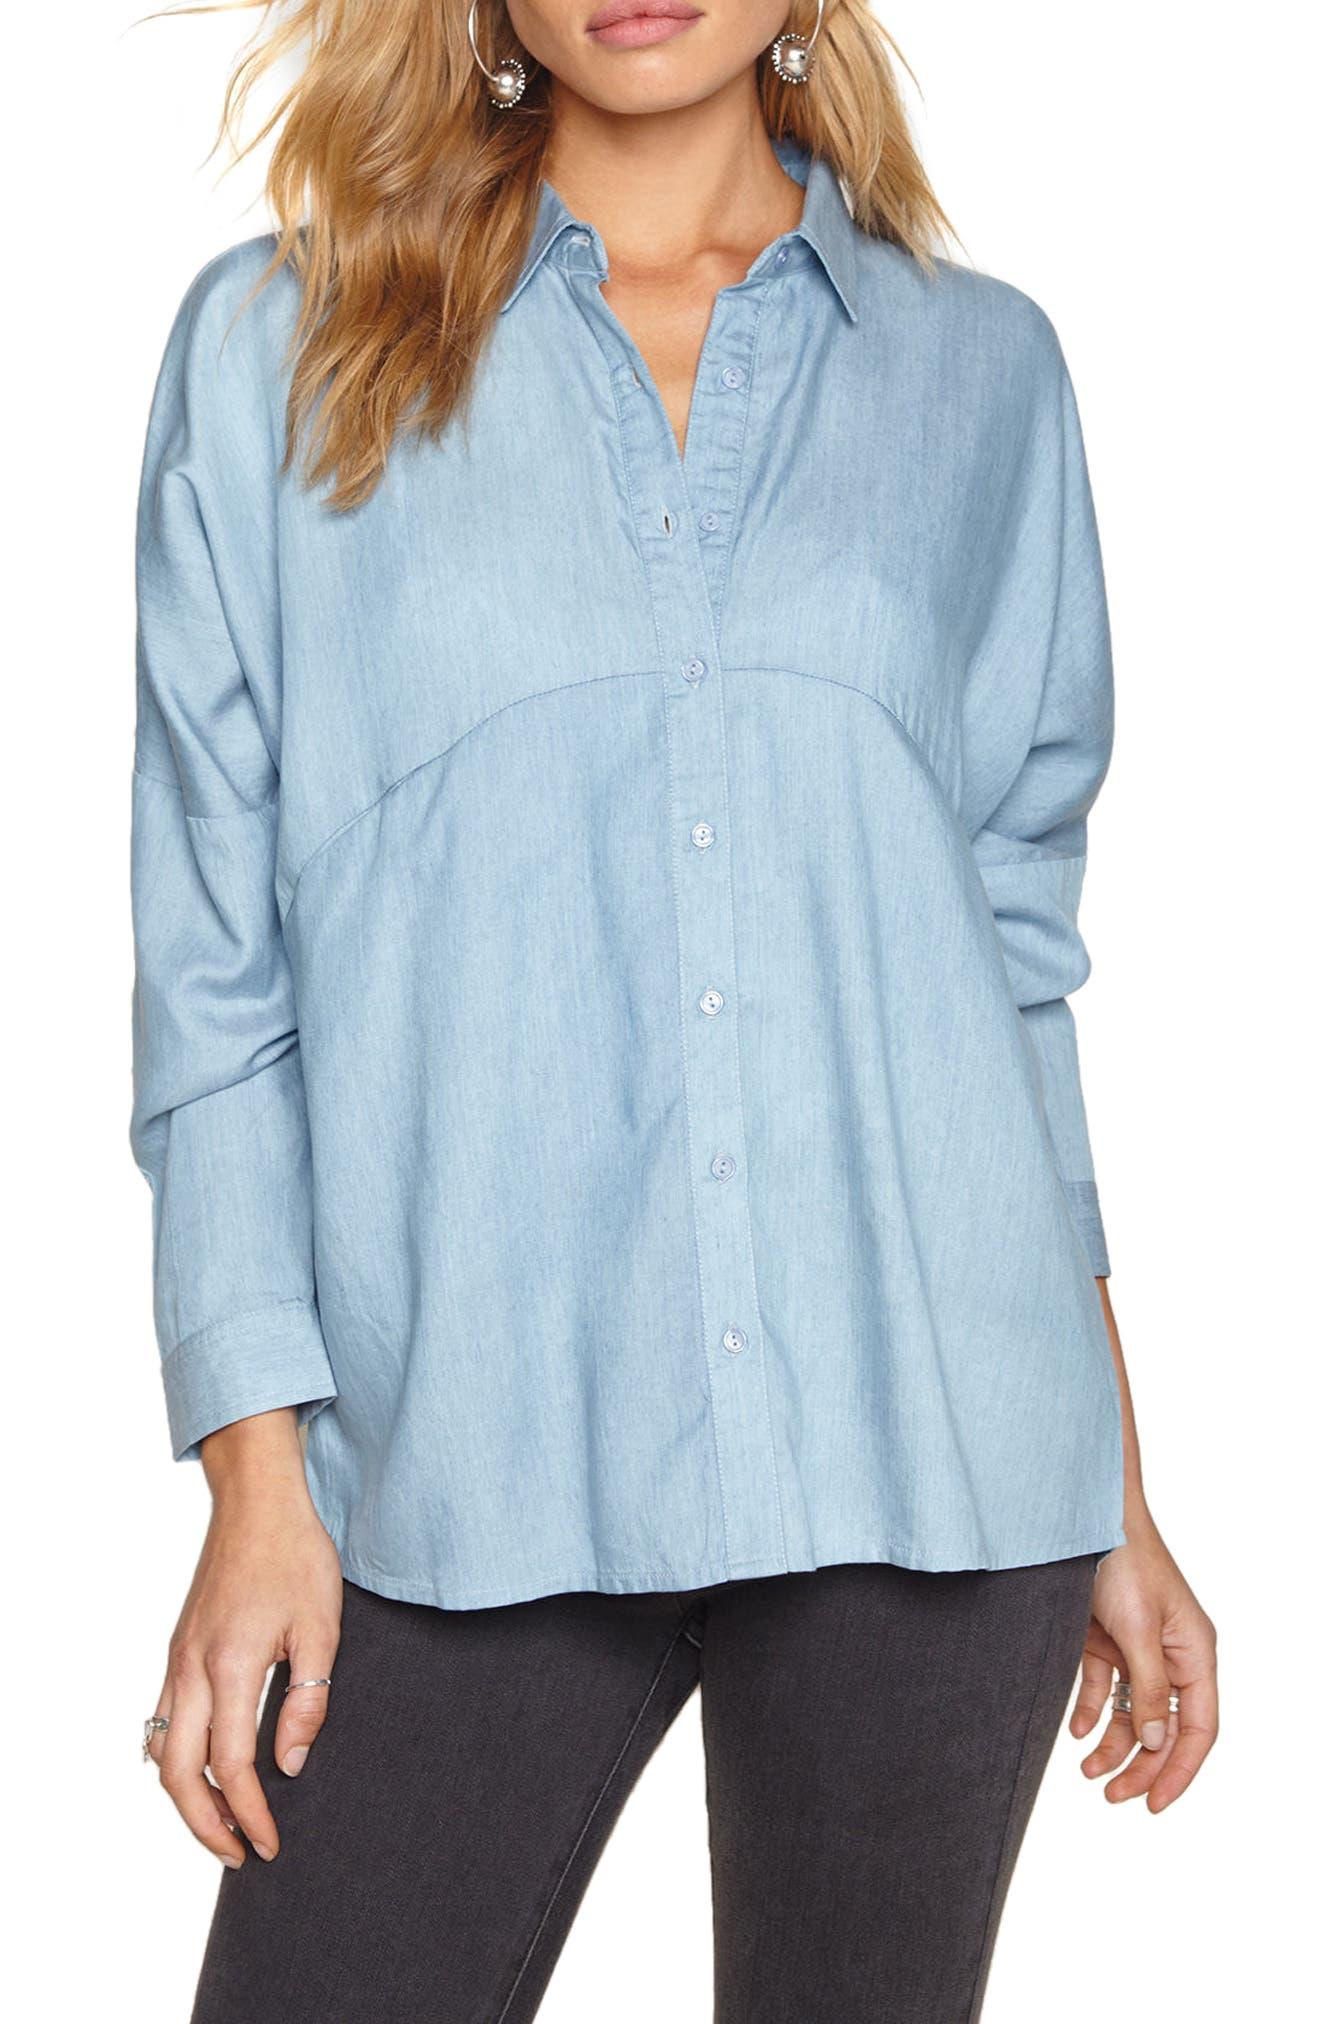 Amuse Society Casual Fridays Chambray Shirt